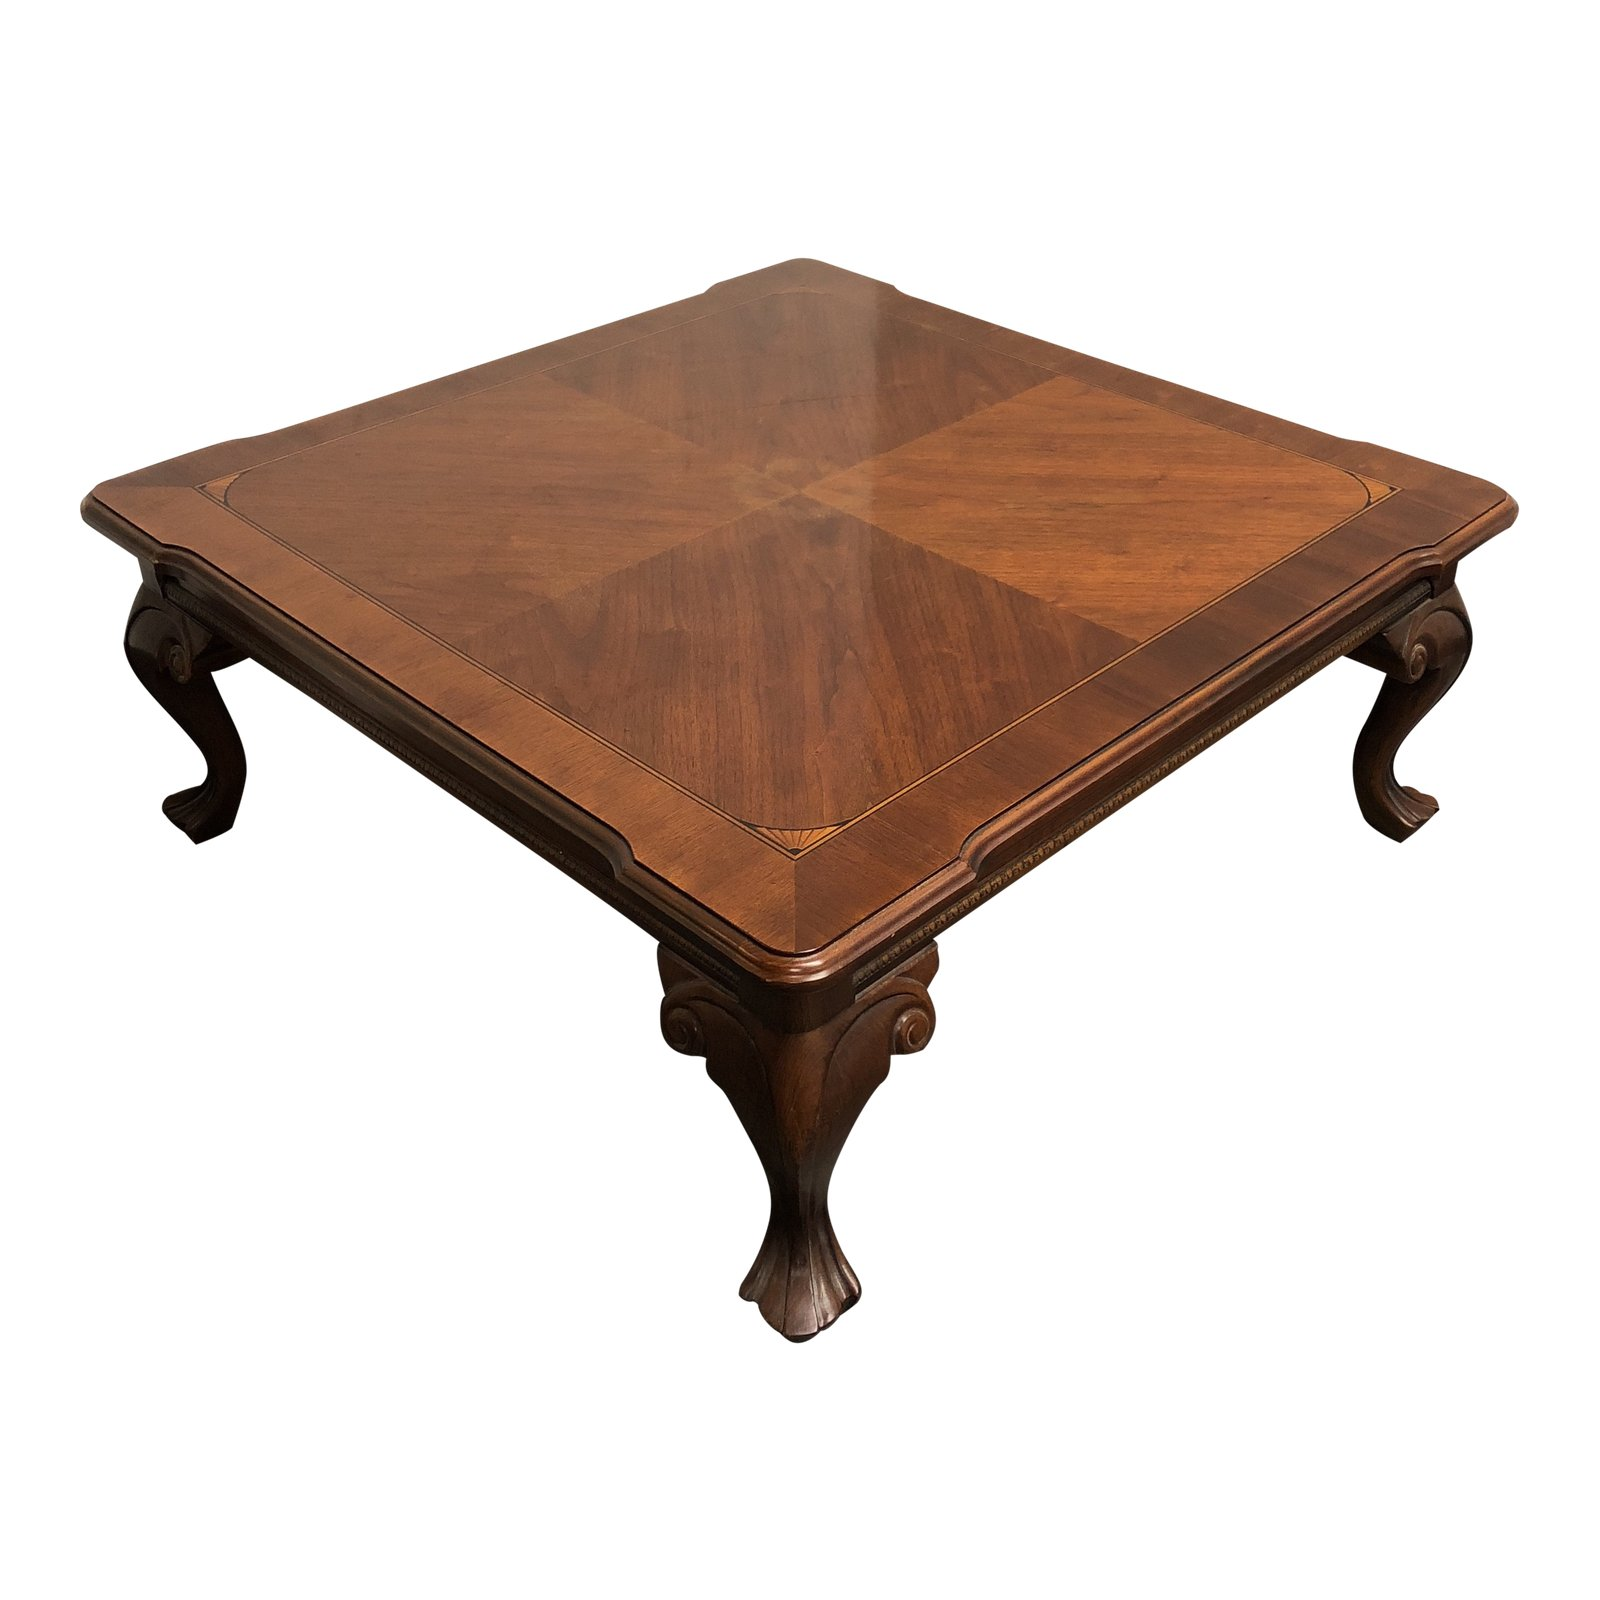 Showplace Custom Wood Coffee Table. Original Price: $3,500.00